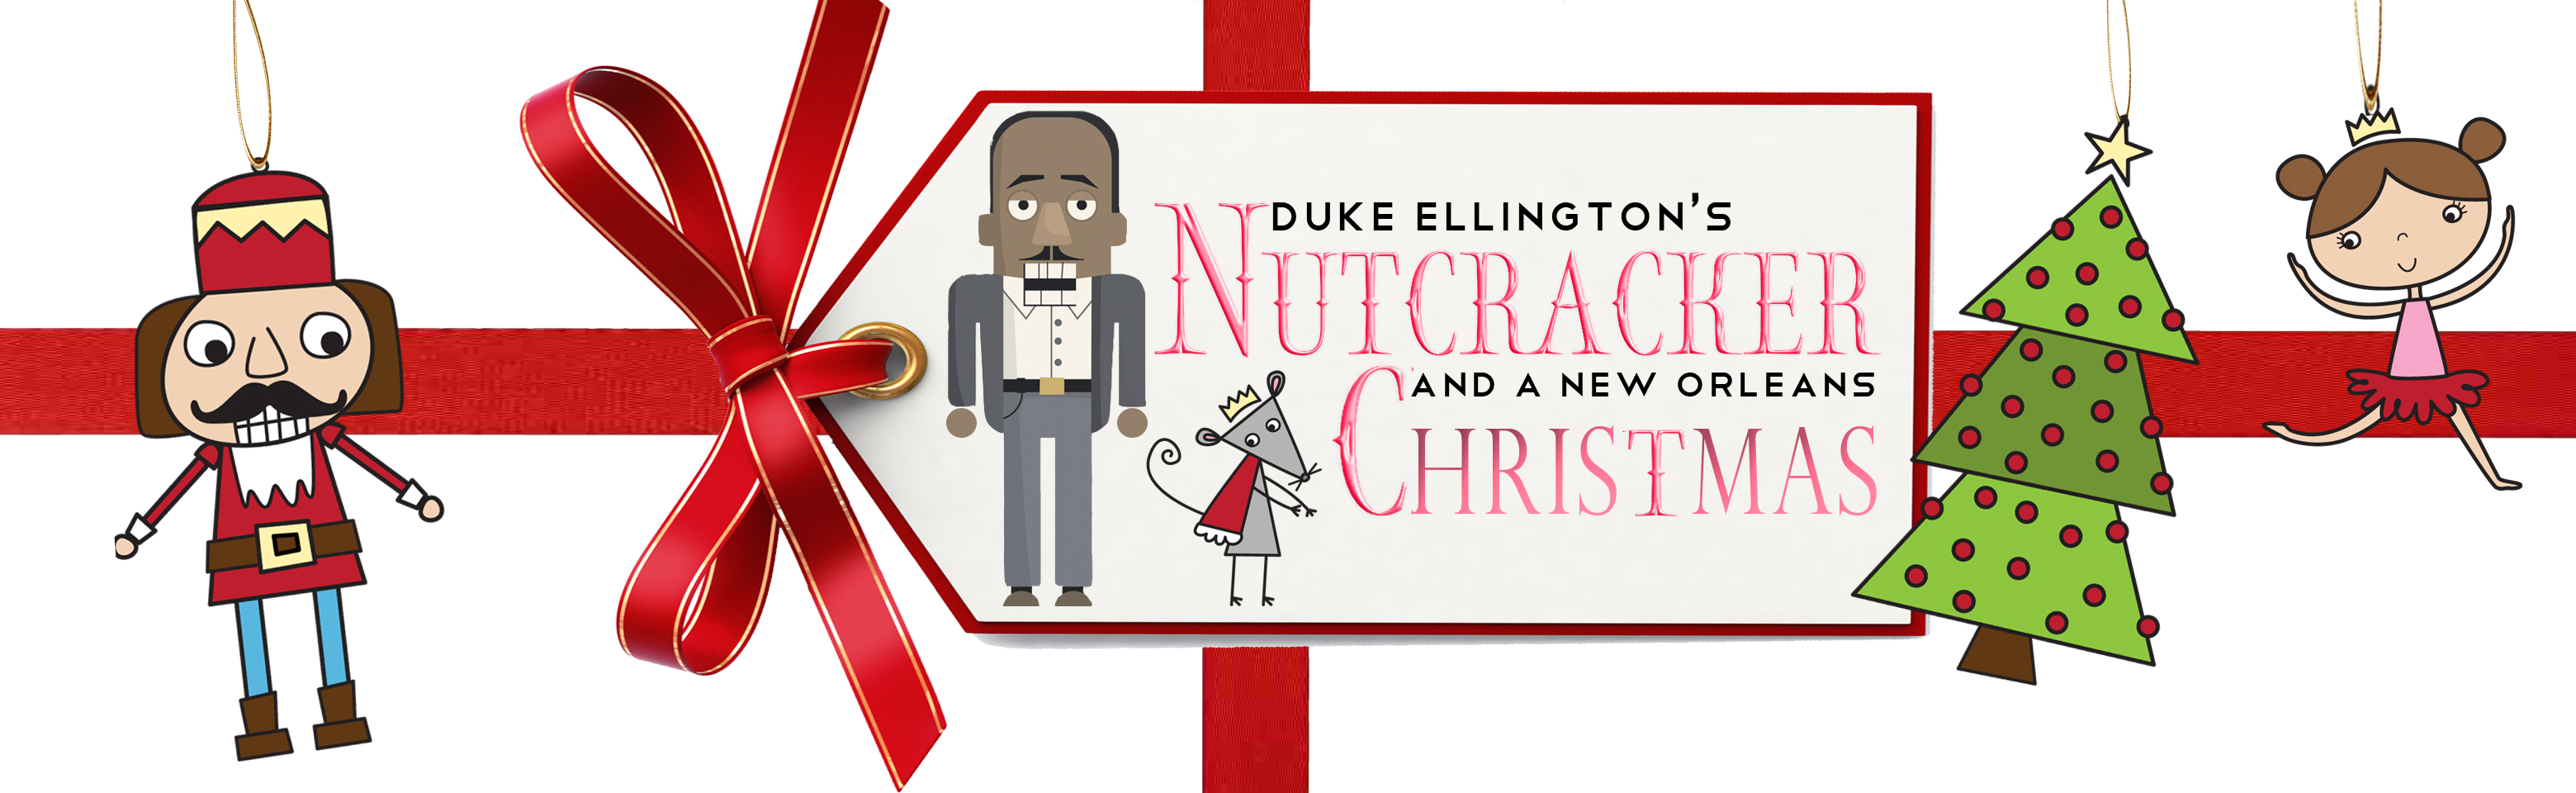 Cool Your Yule with Duke Ellington's Nutcracker